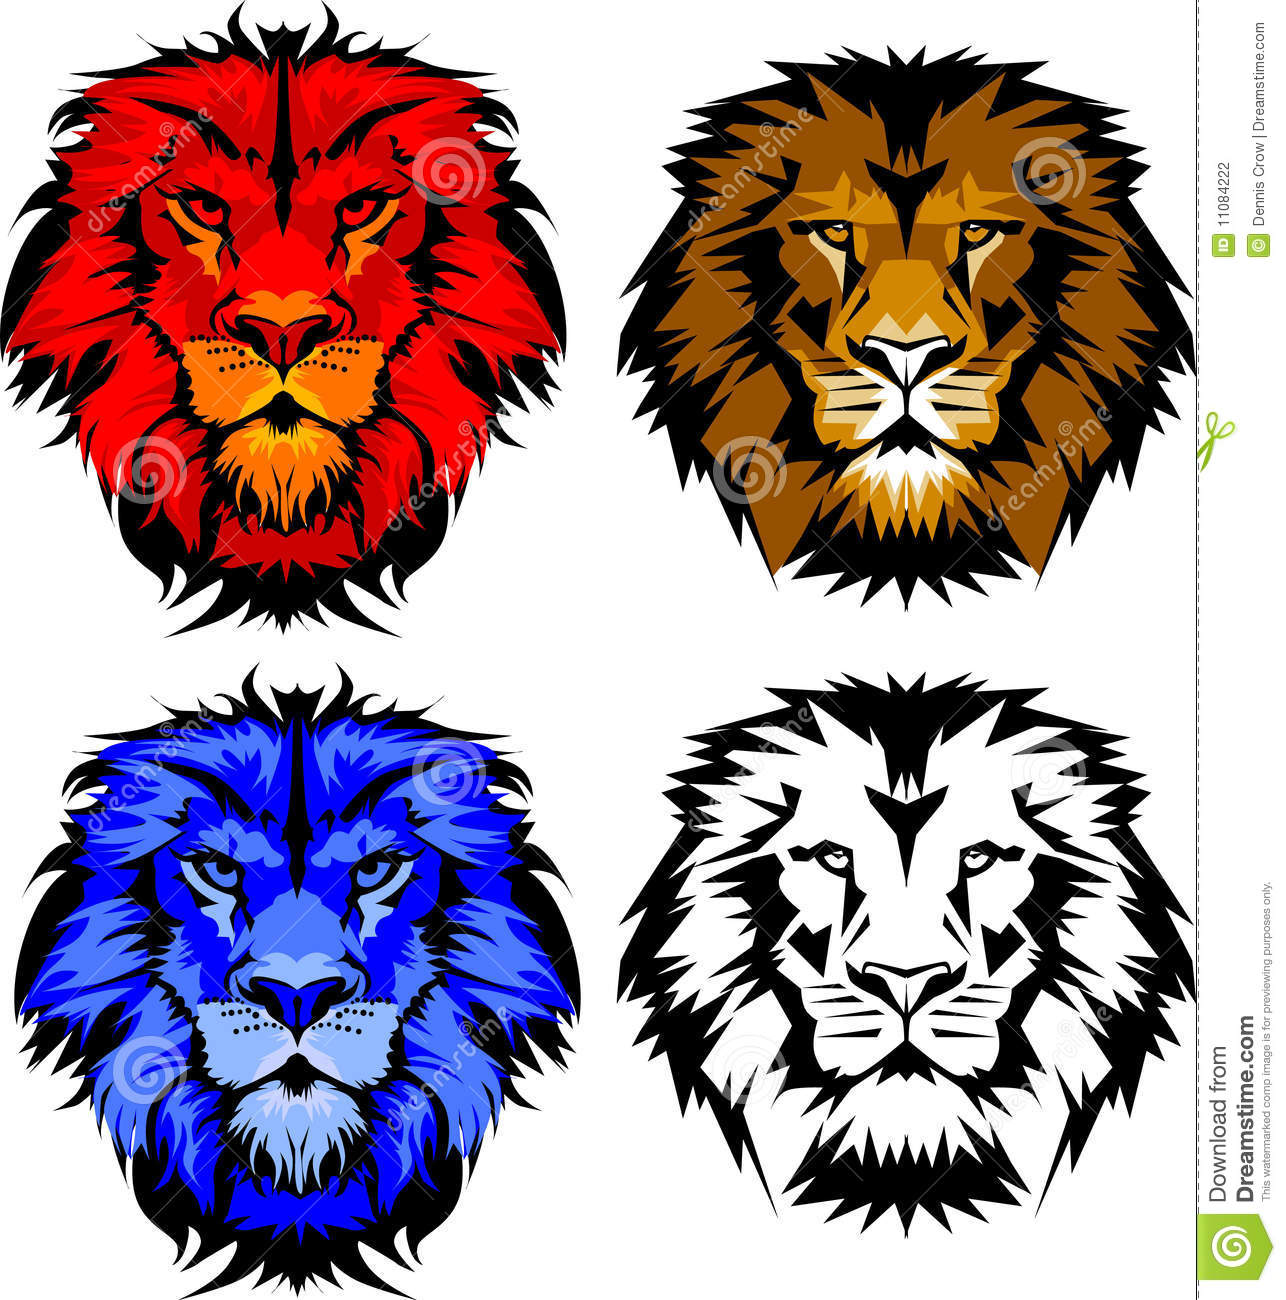 Vector Images of Lion Mascot Logos. Panther Logo Designs